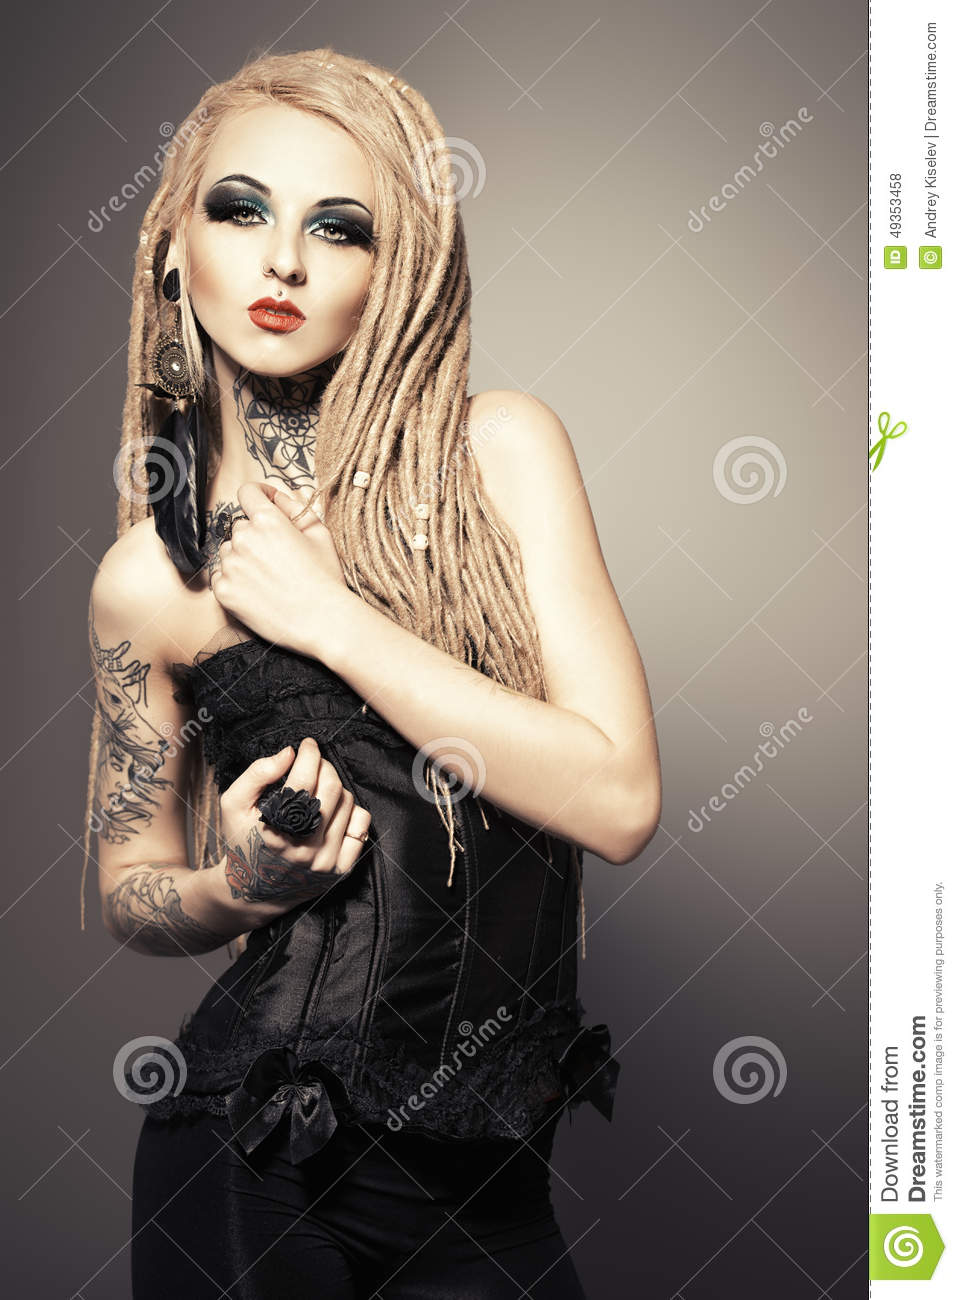 Gothic woman stock photo image 49353458 Fashion style and make up